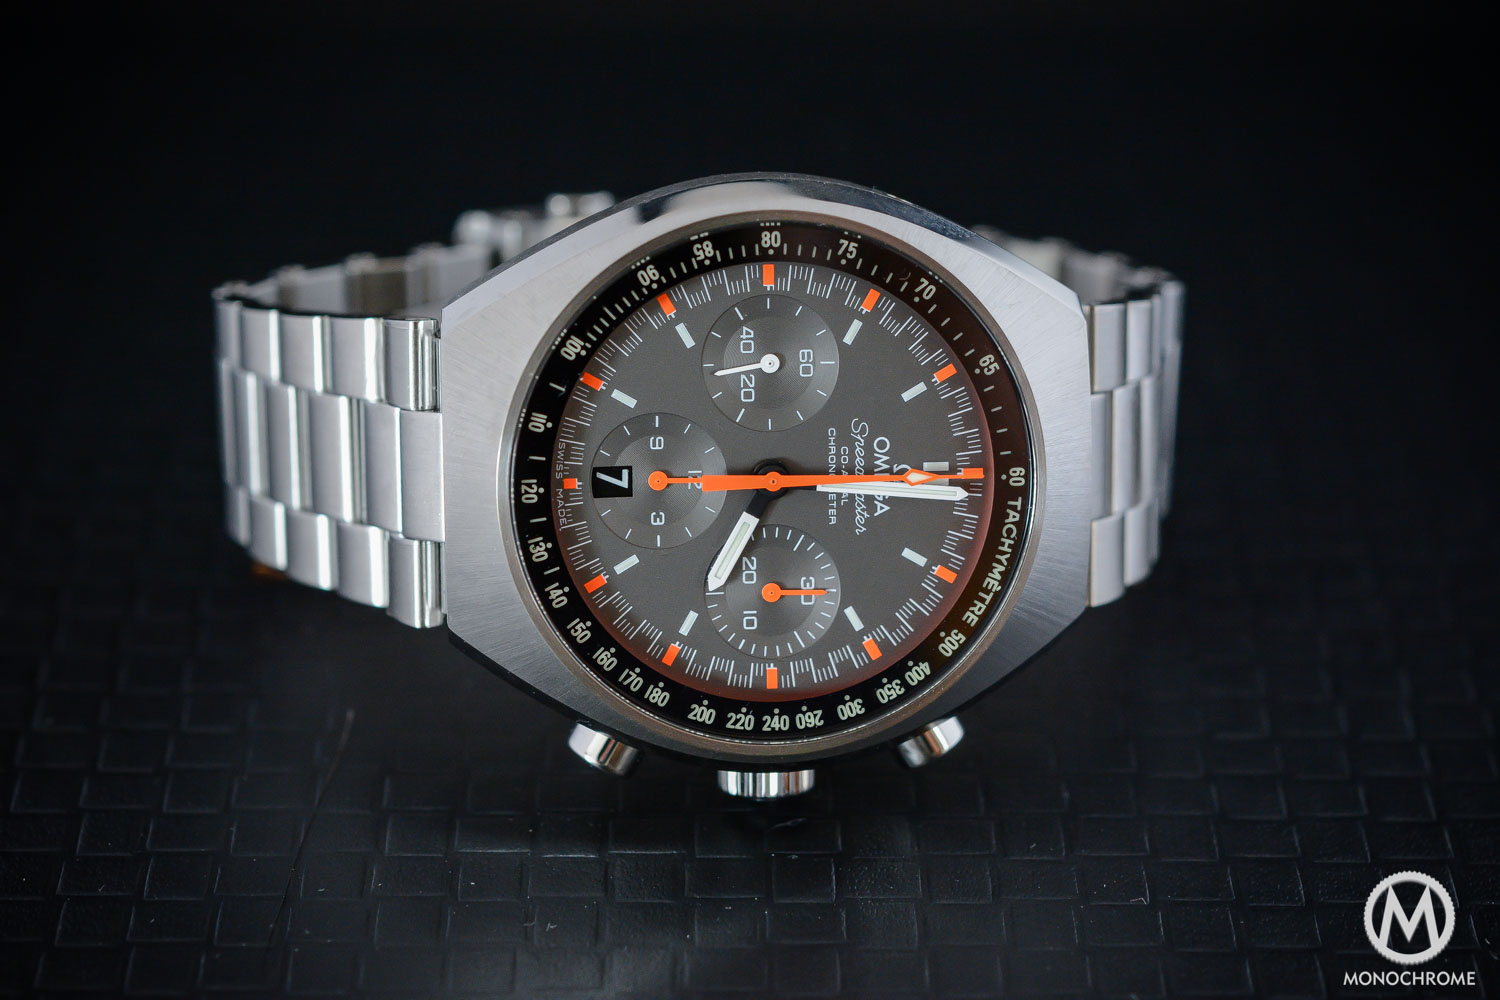 Watch review: Omega Speedmaster MKII advise